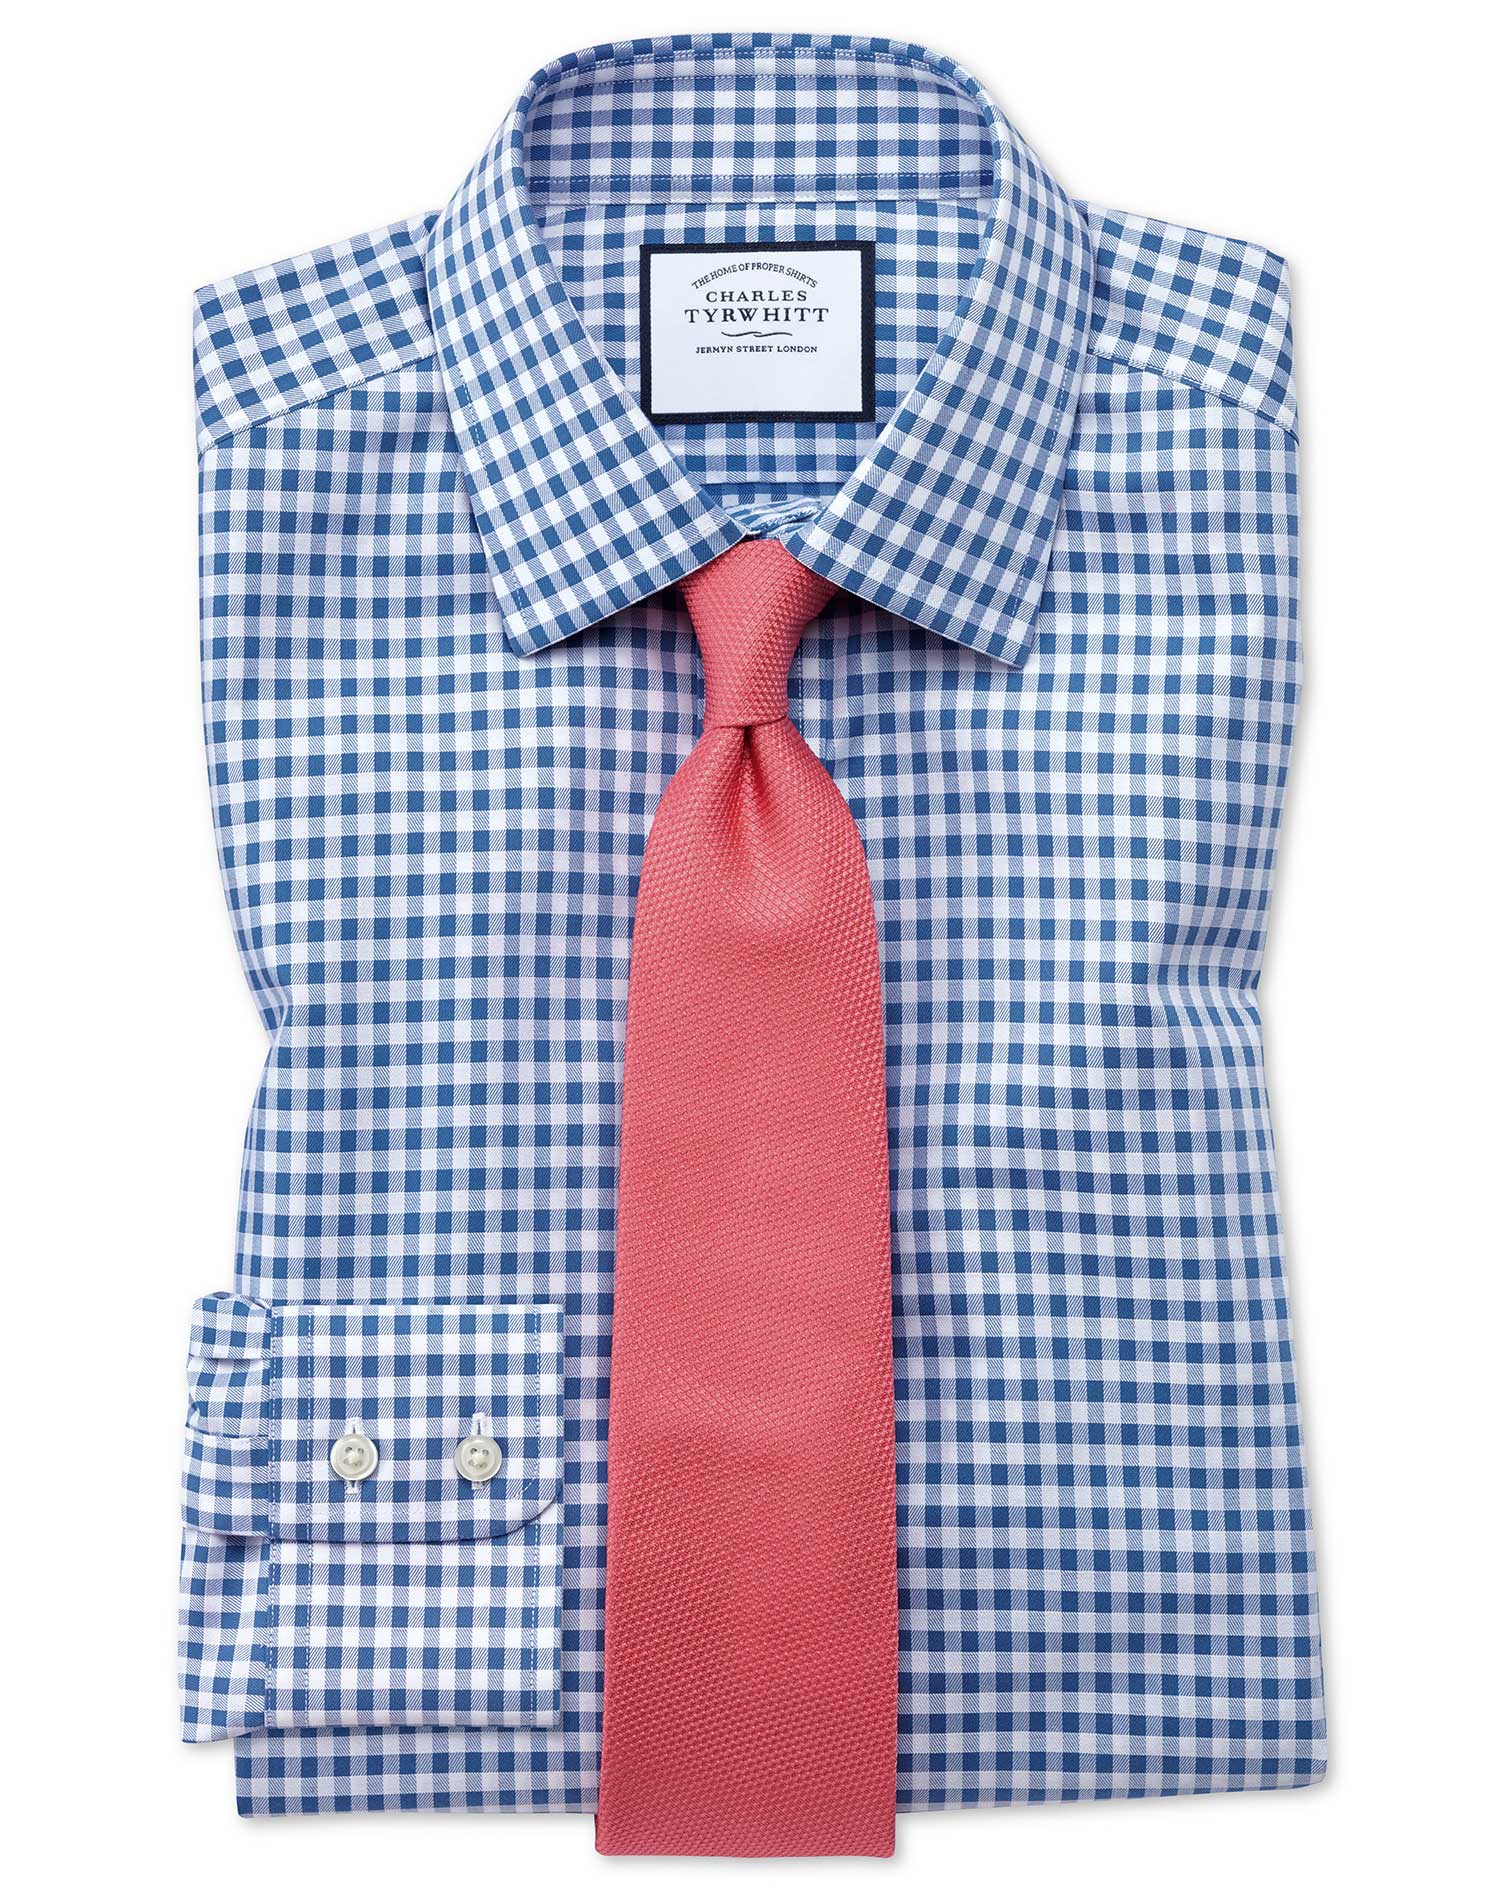 Classic Fit Non-Iron Gingham Mid Blue Cotton Formal Shirt Single Cuff Size 16/36 by Charles Tyrwhitt